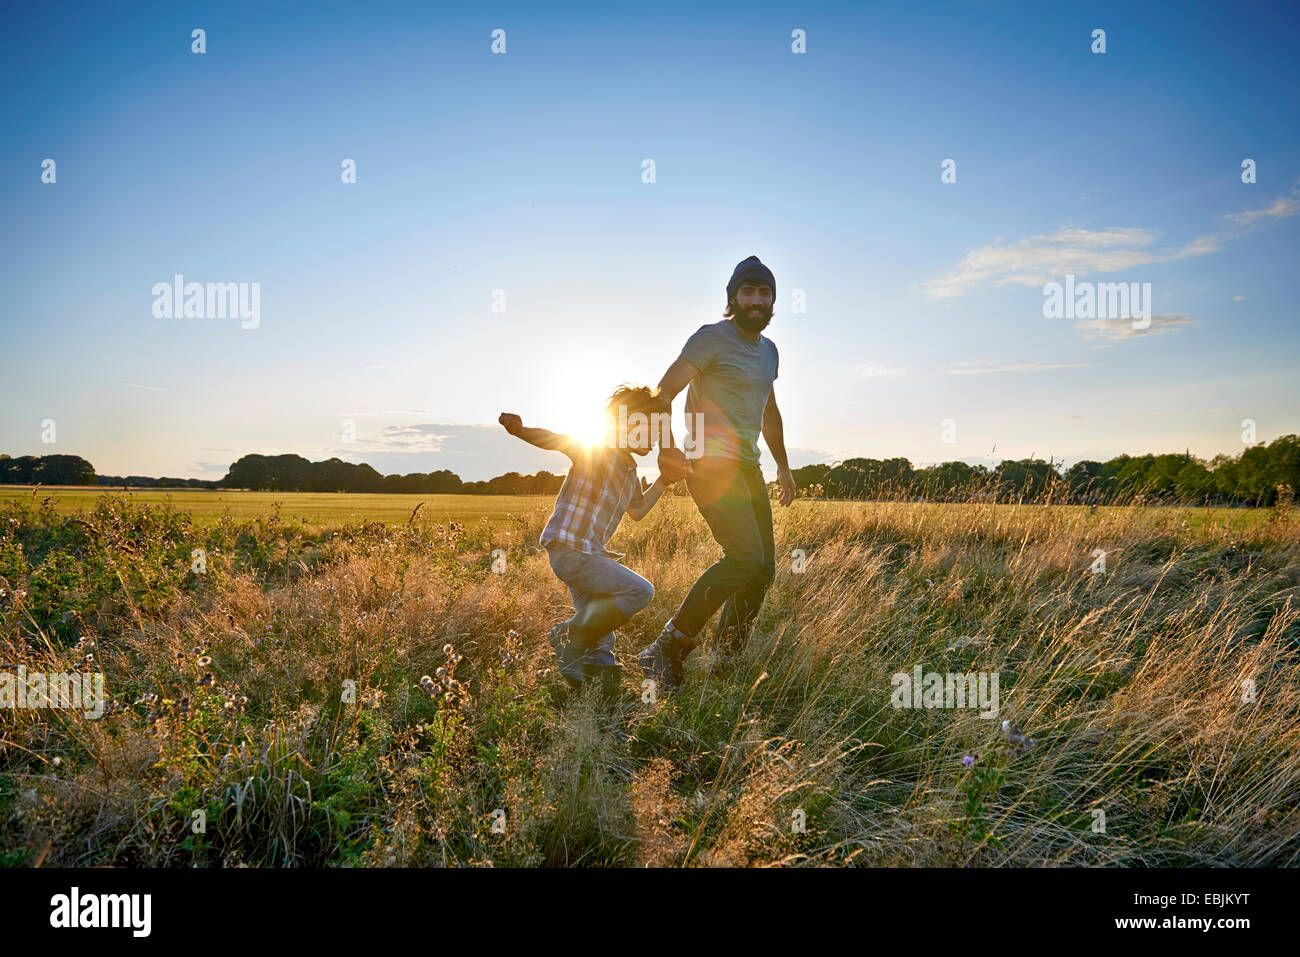 Father and son out walking in the park - Stock Image